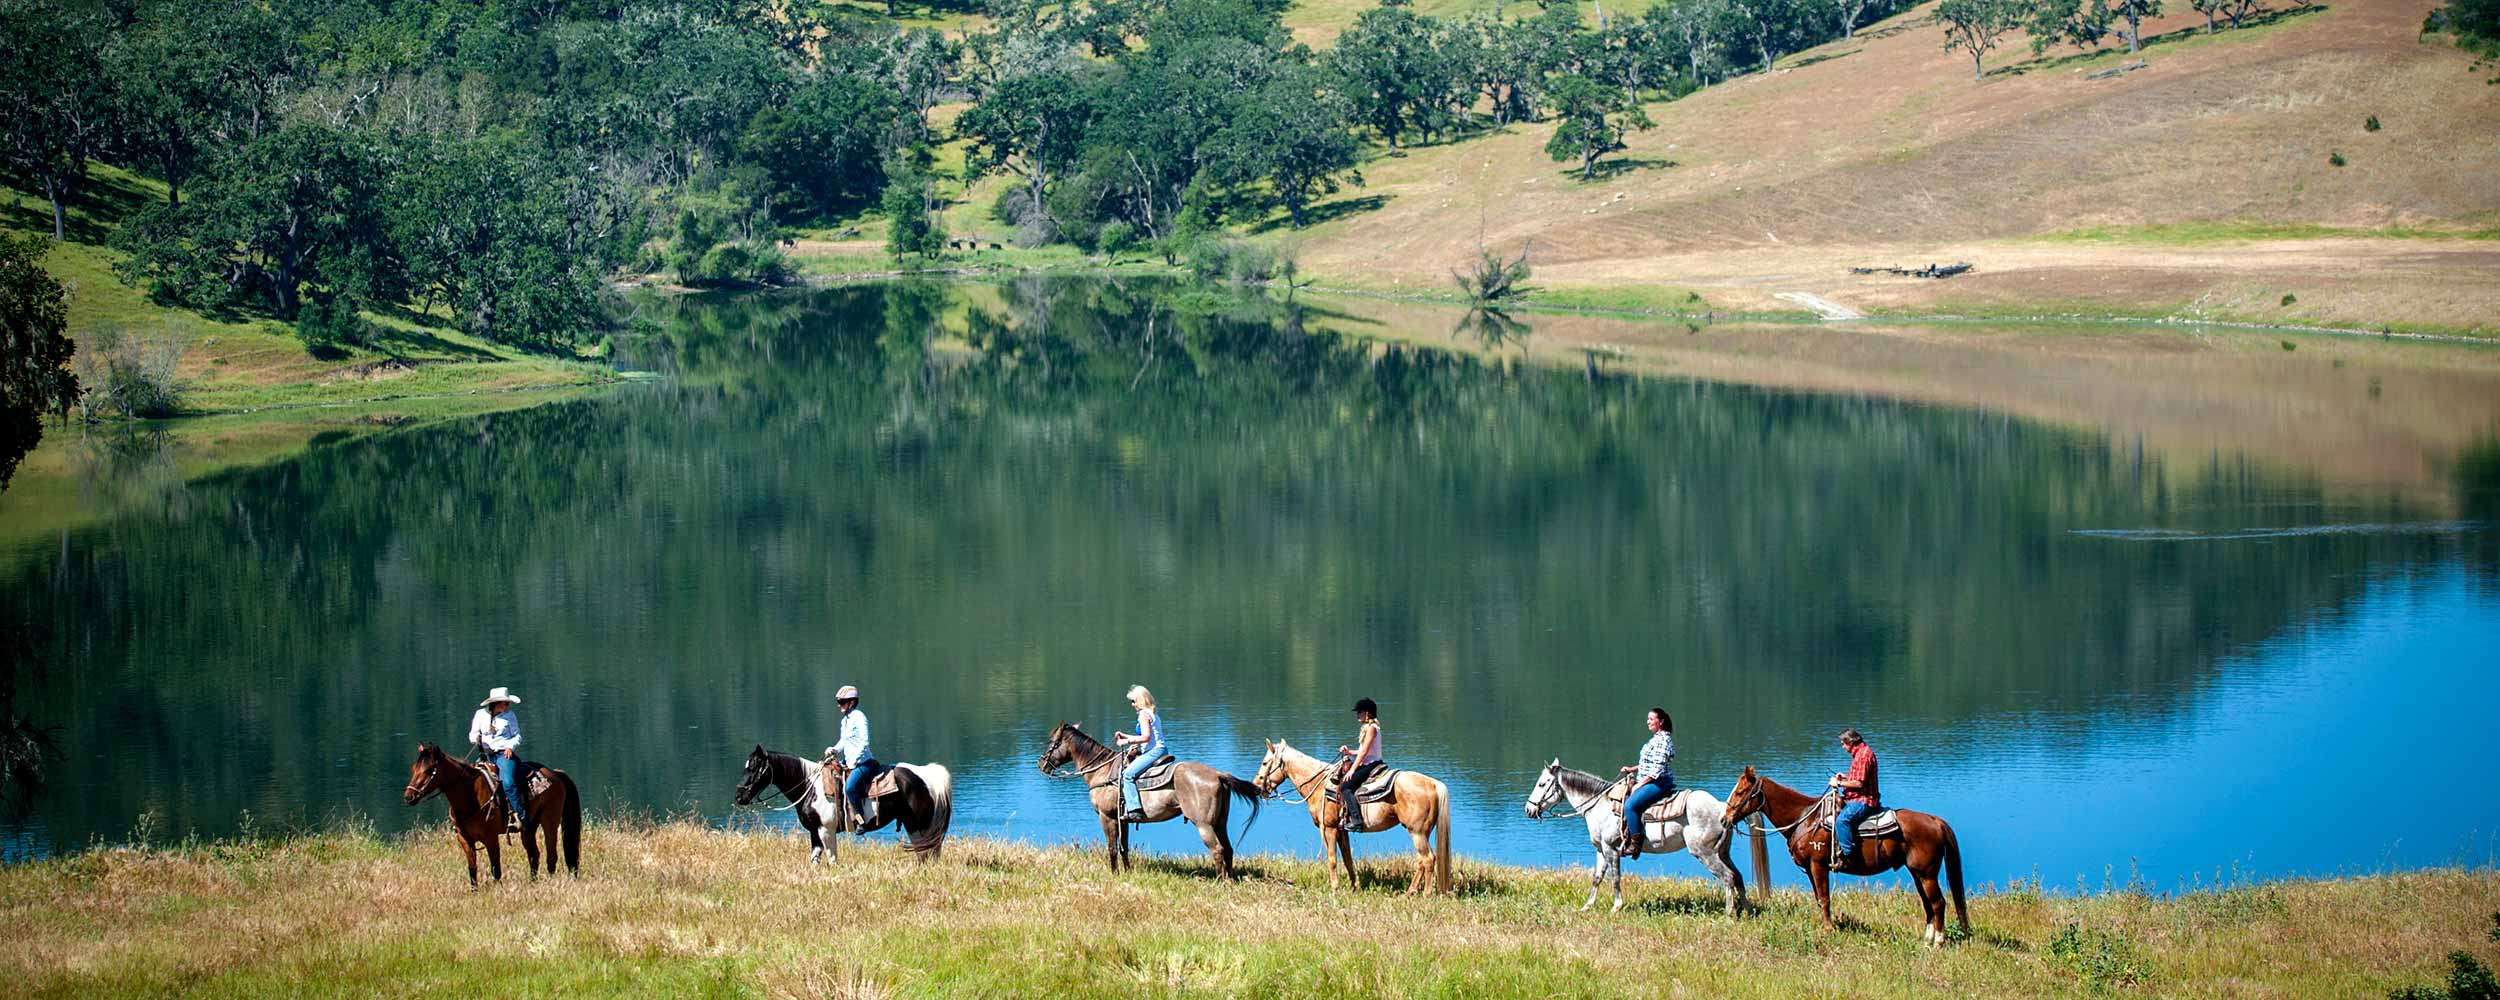 horseback riding by the Lake - Alisal Resort in Solvang California